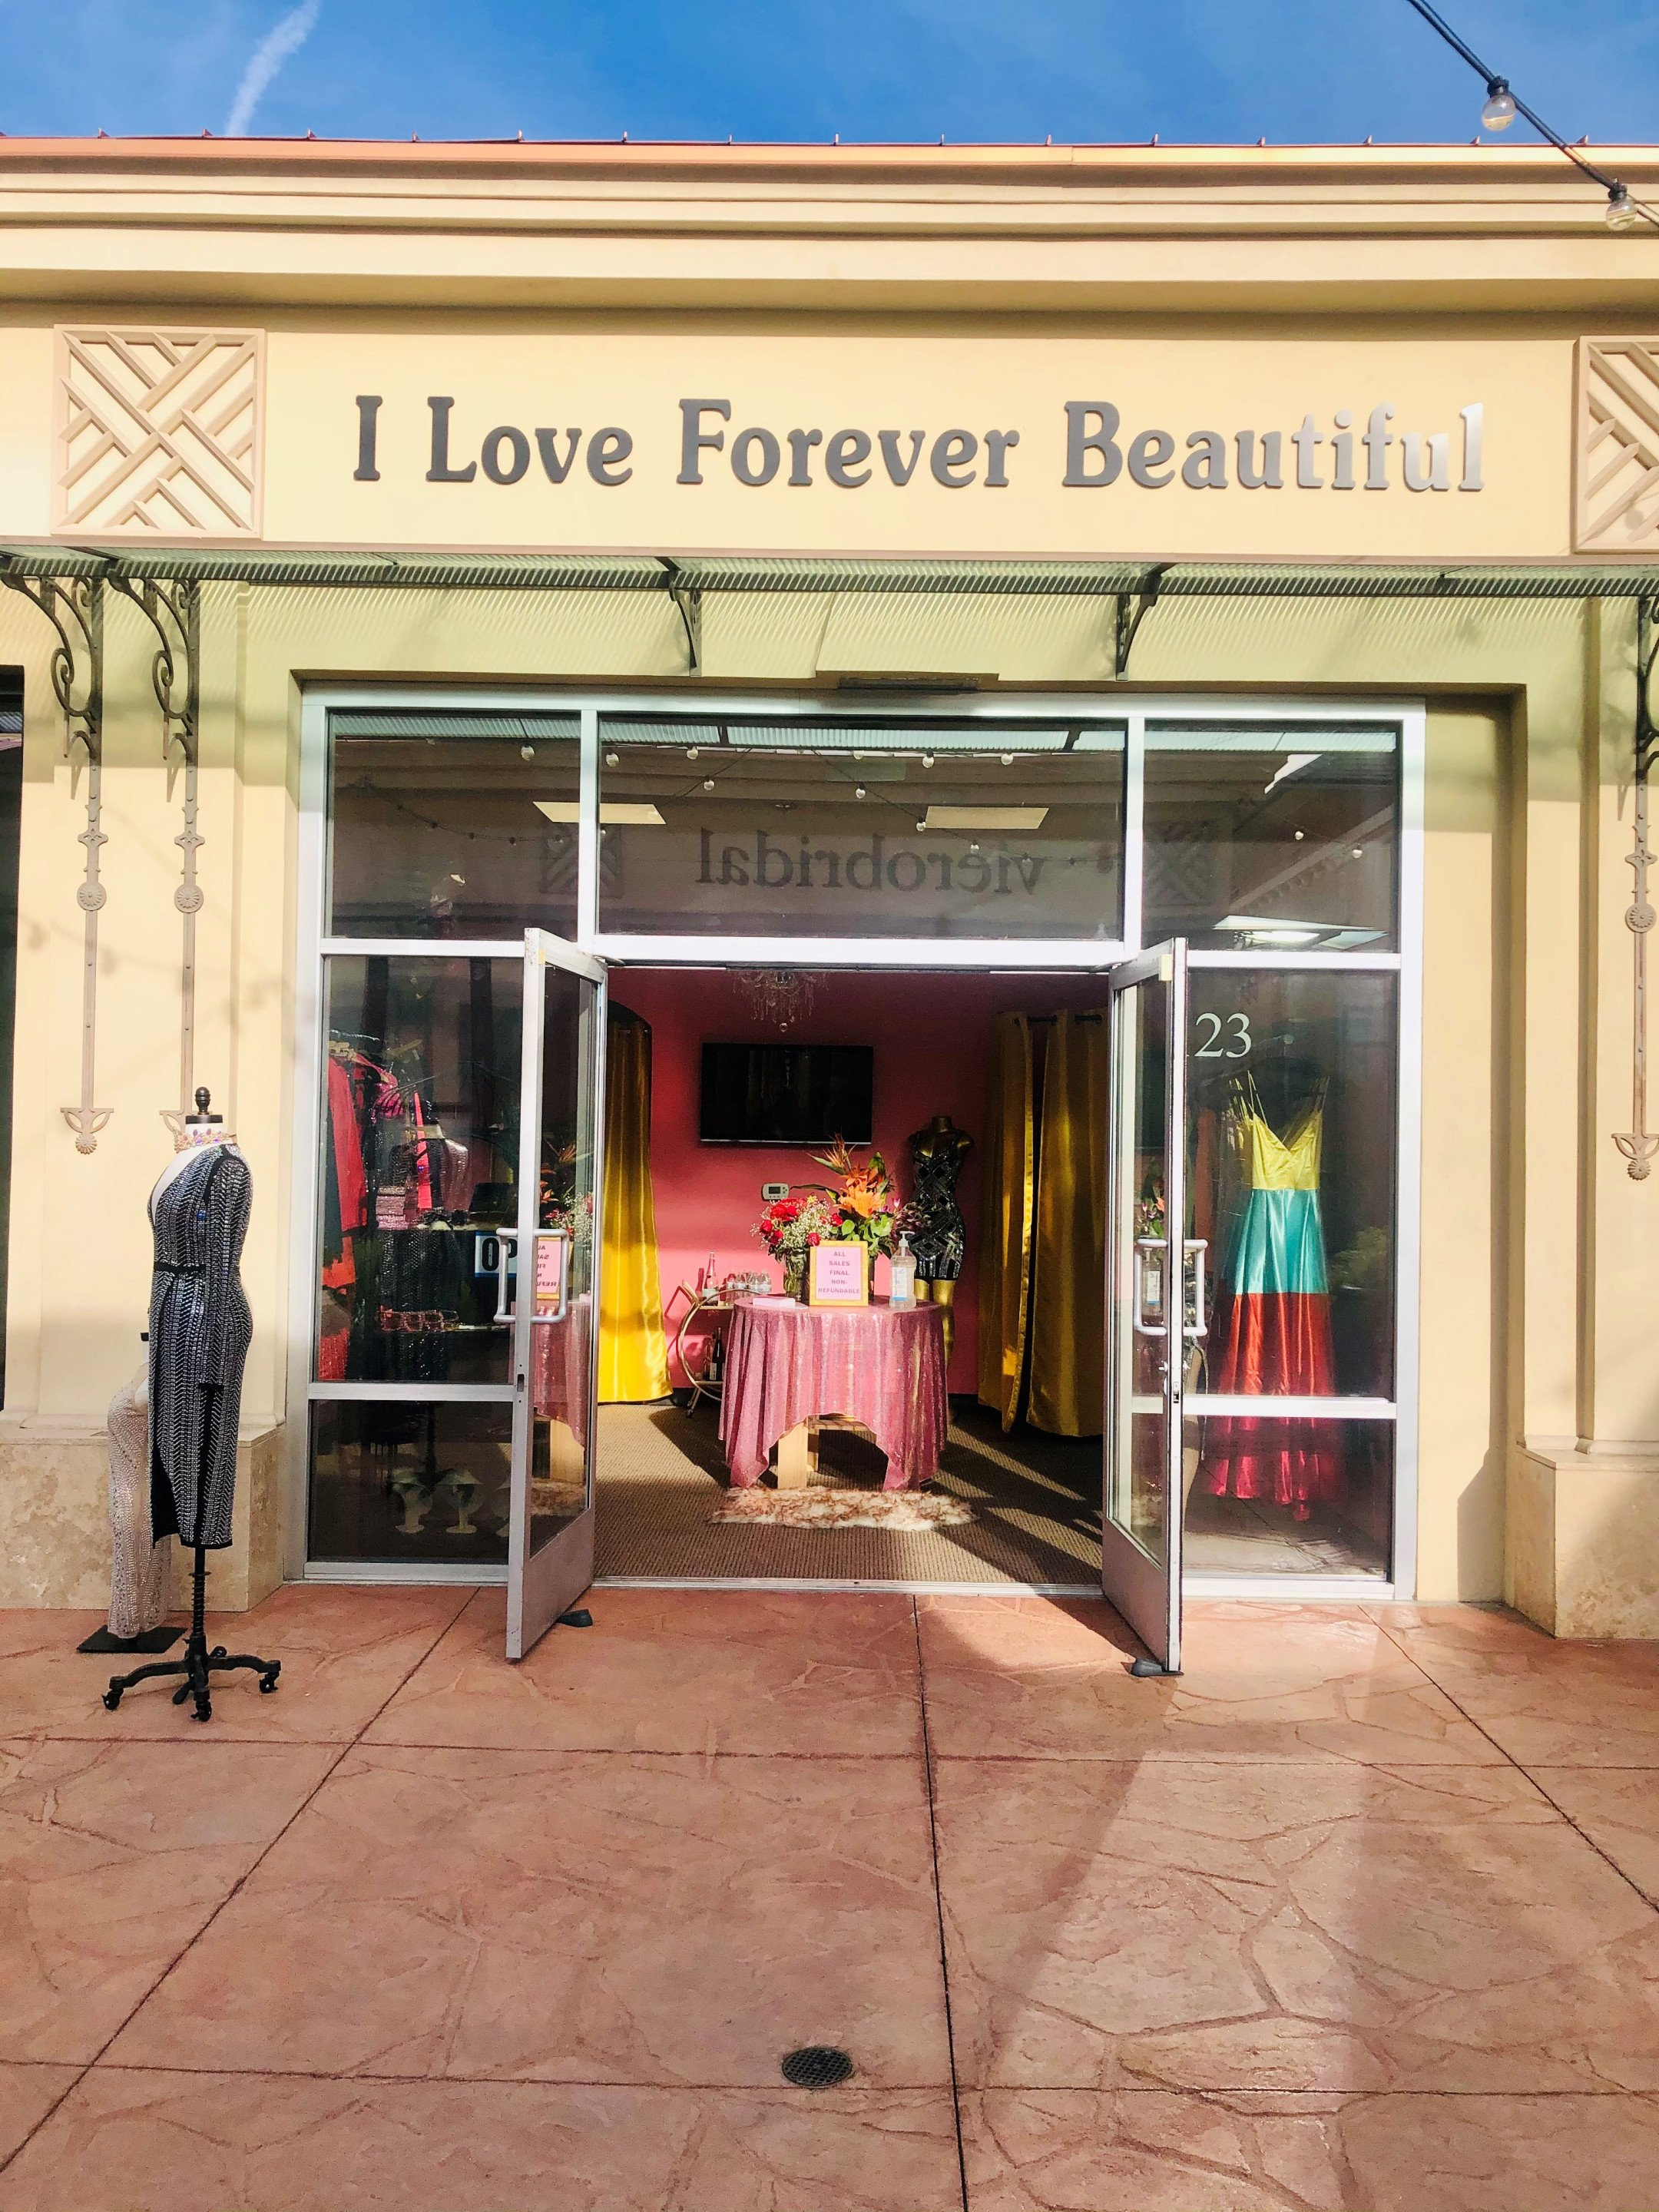 I Love Forever Beautiful